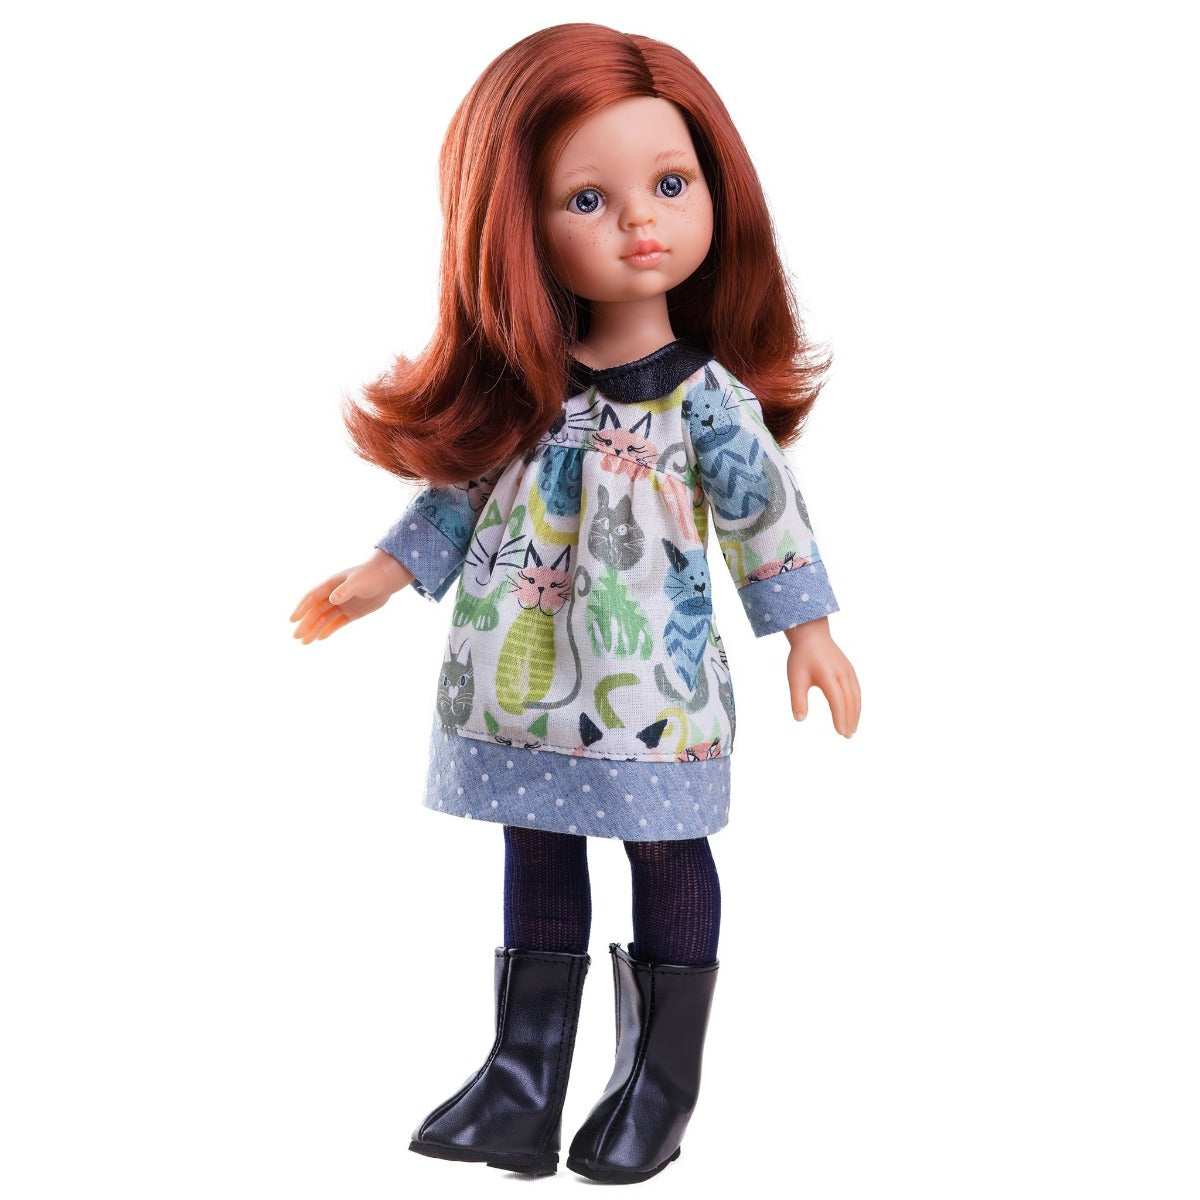 Paola Reina Cristi Doll at Little Sprout